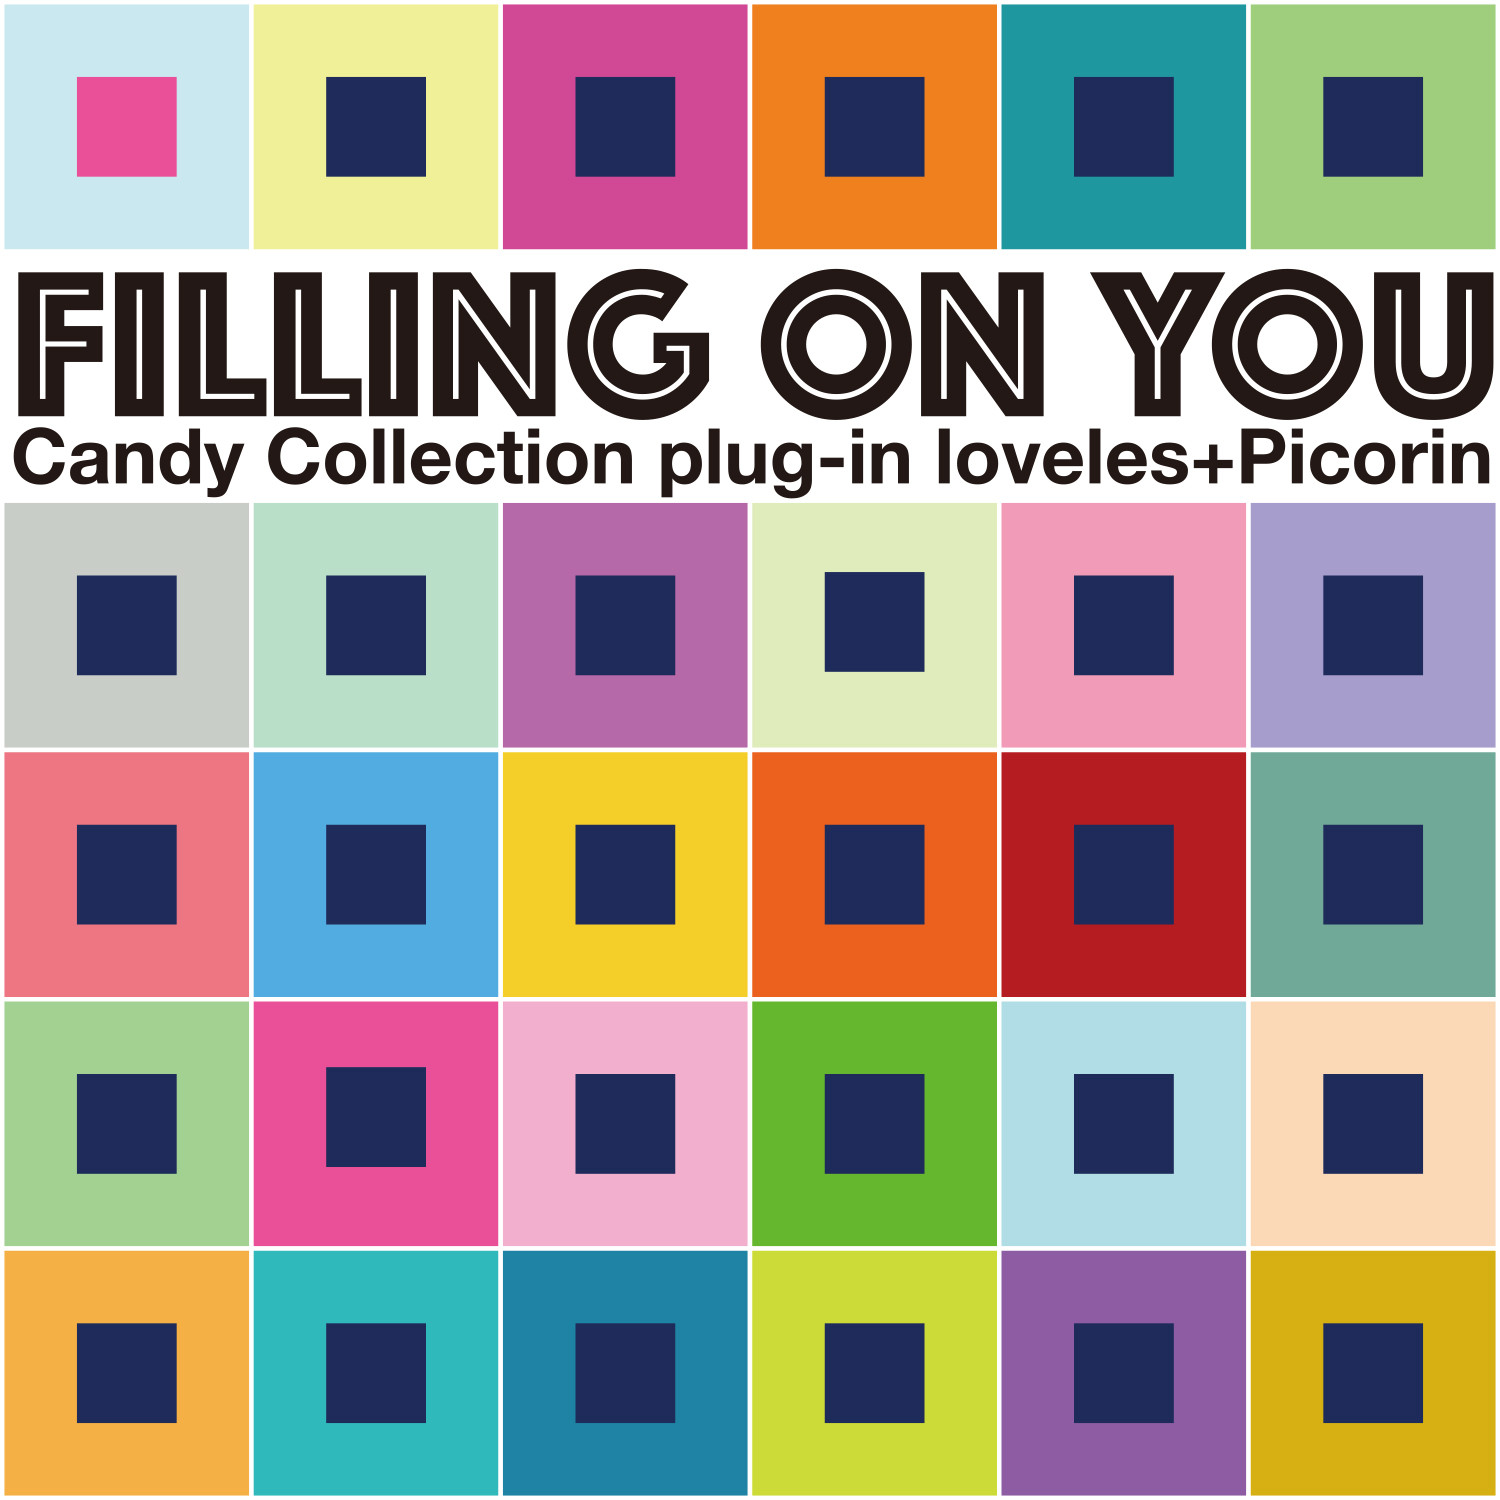 Candy Collection plug-in loveles+Picorin / Filling on you